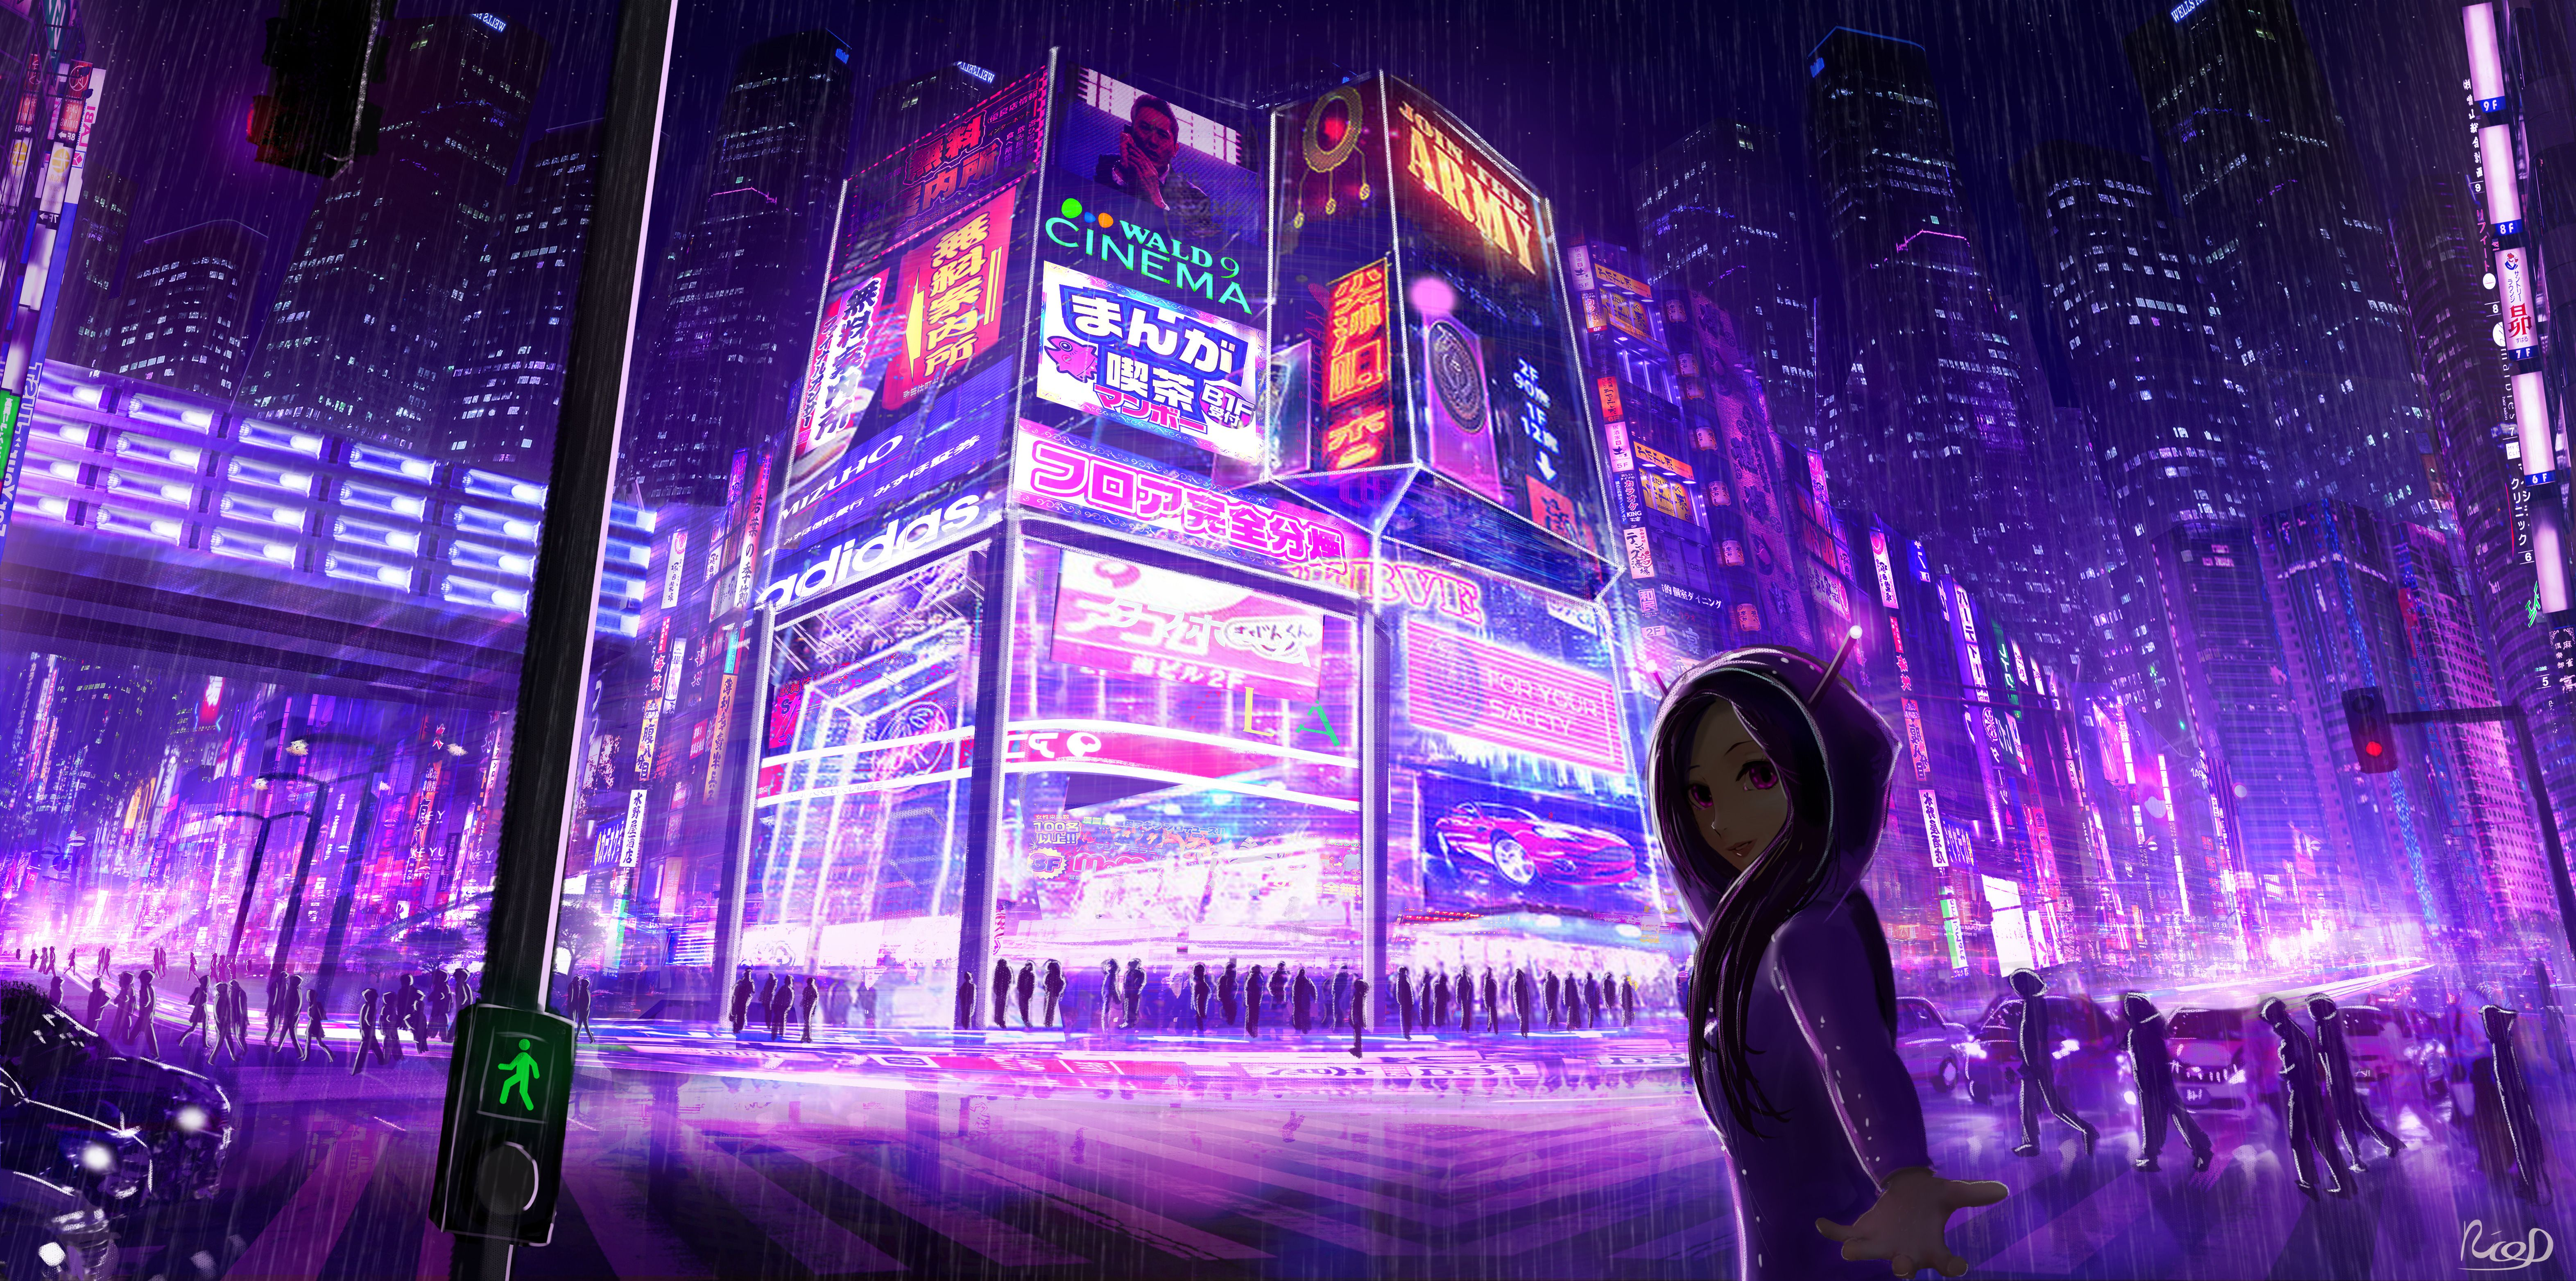 Cyberpunk Cityscape Girl Digital Art Cyberpunk city